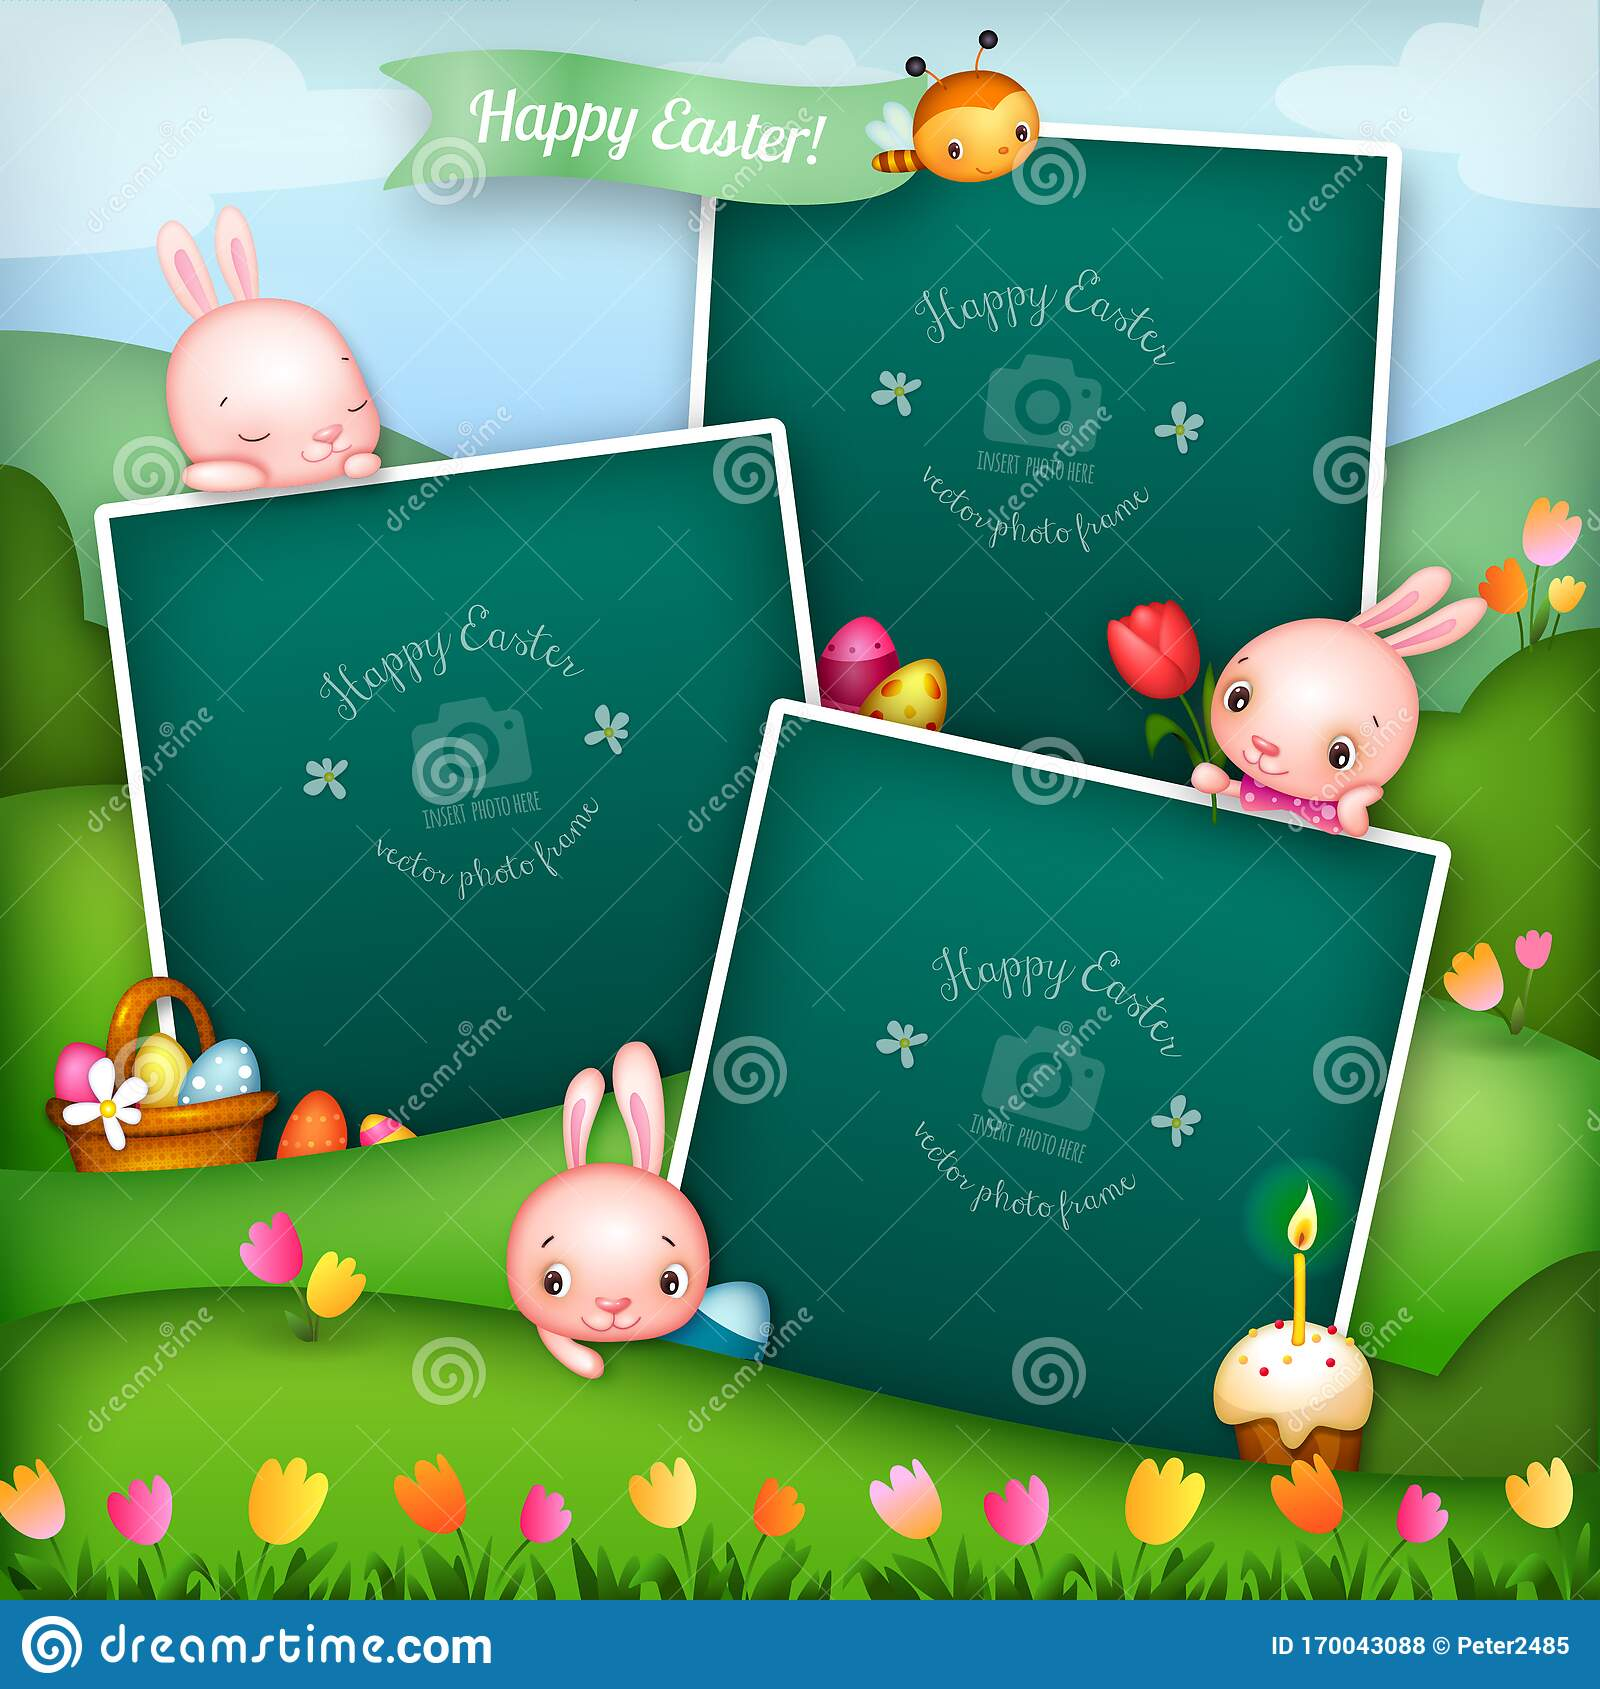 Three Easter Story Photo Frames With Cute Bunny Characters